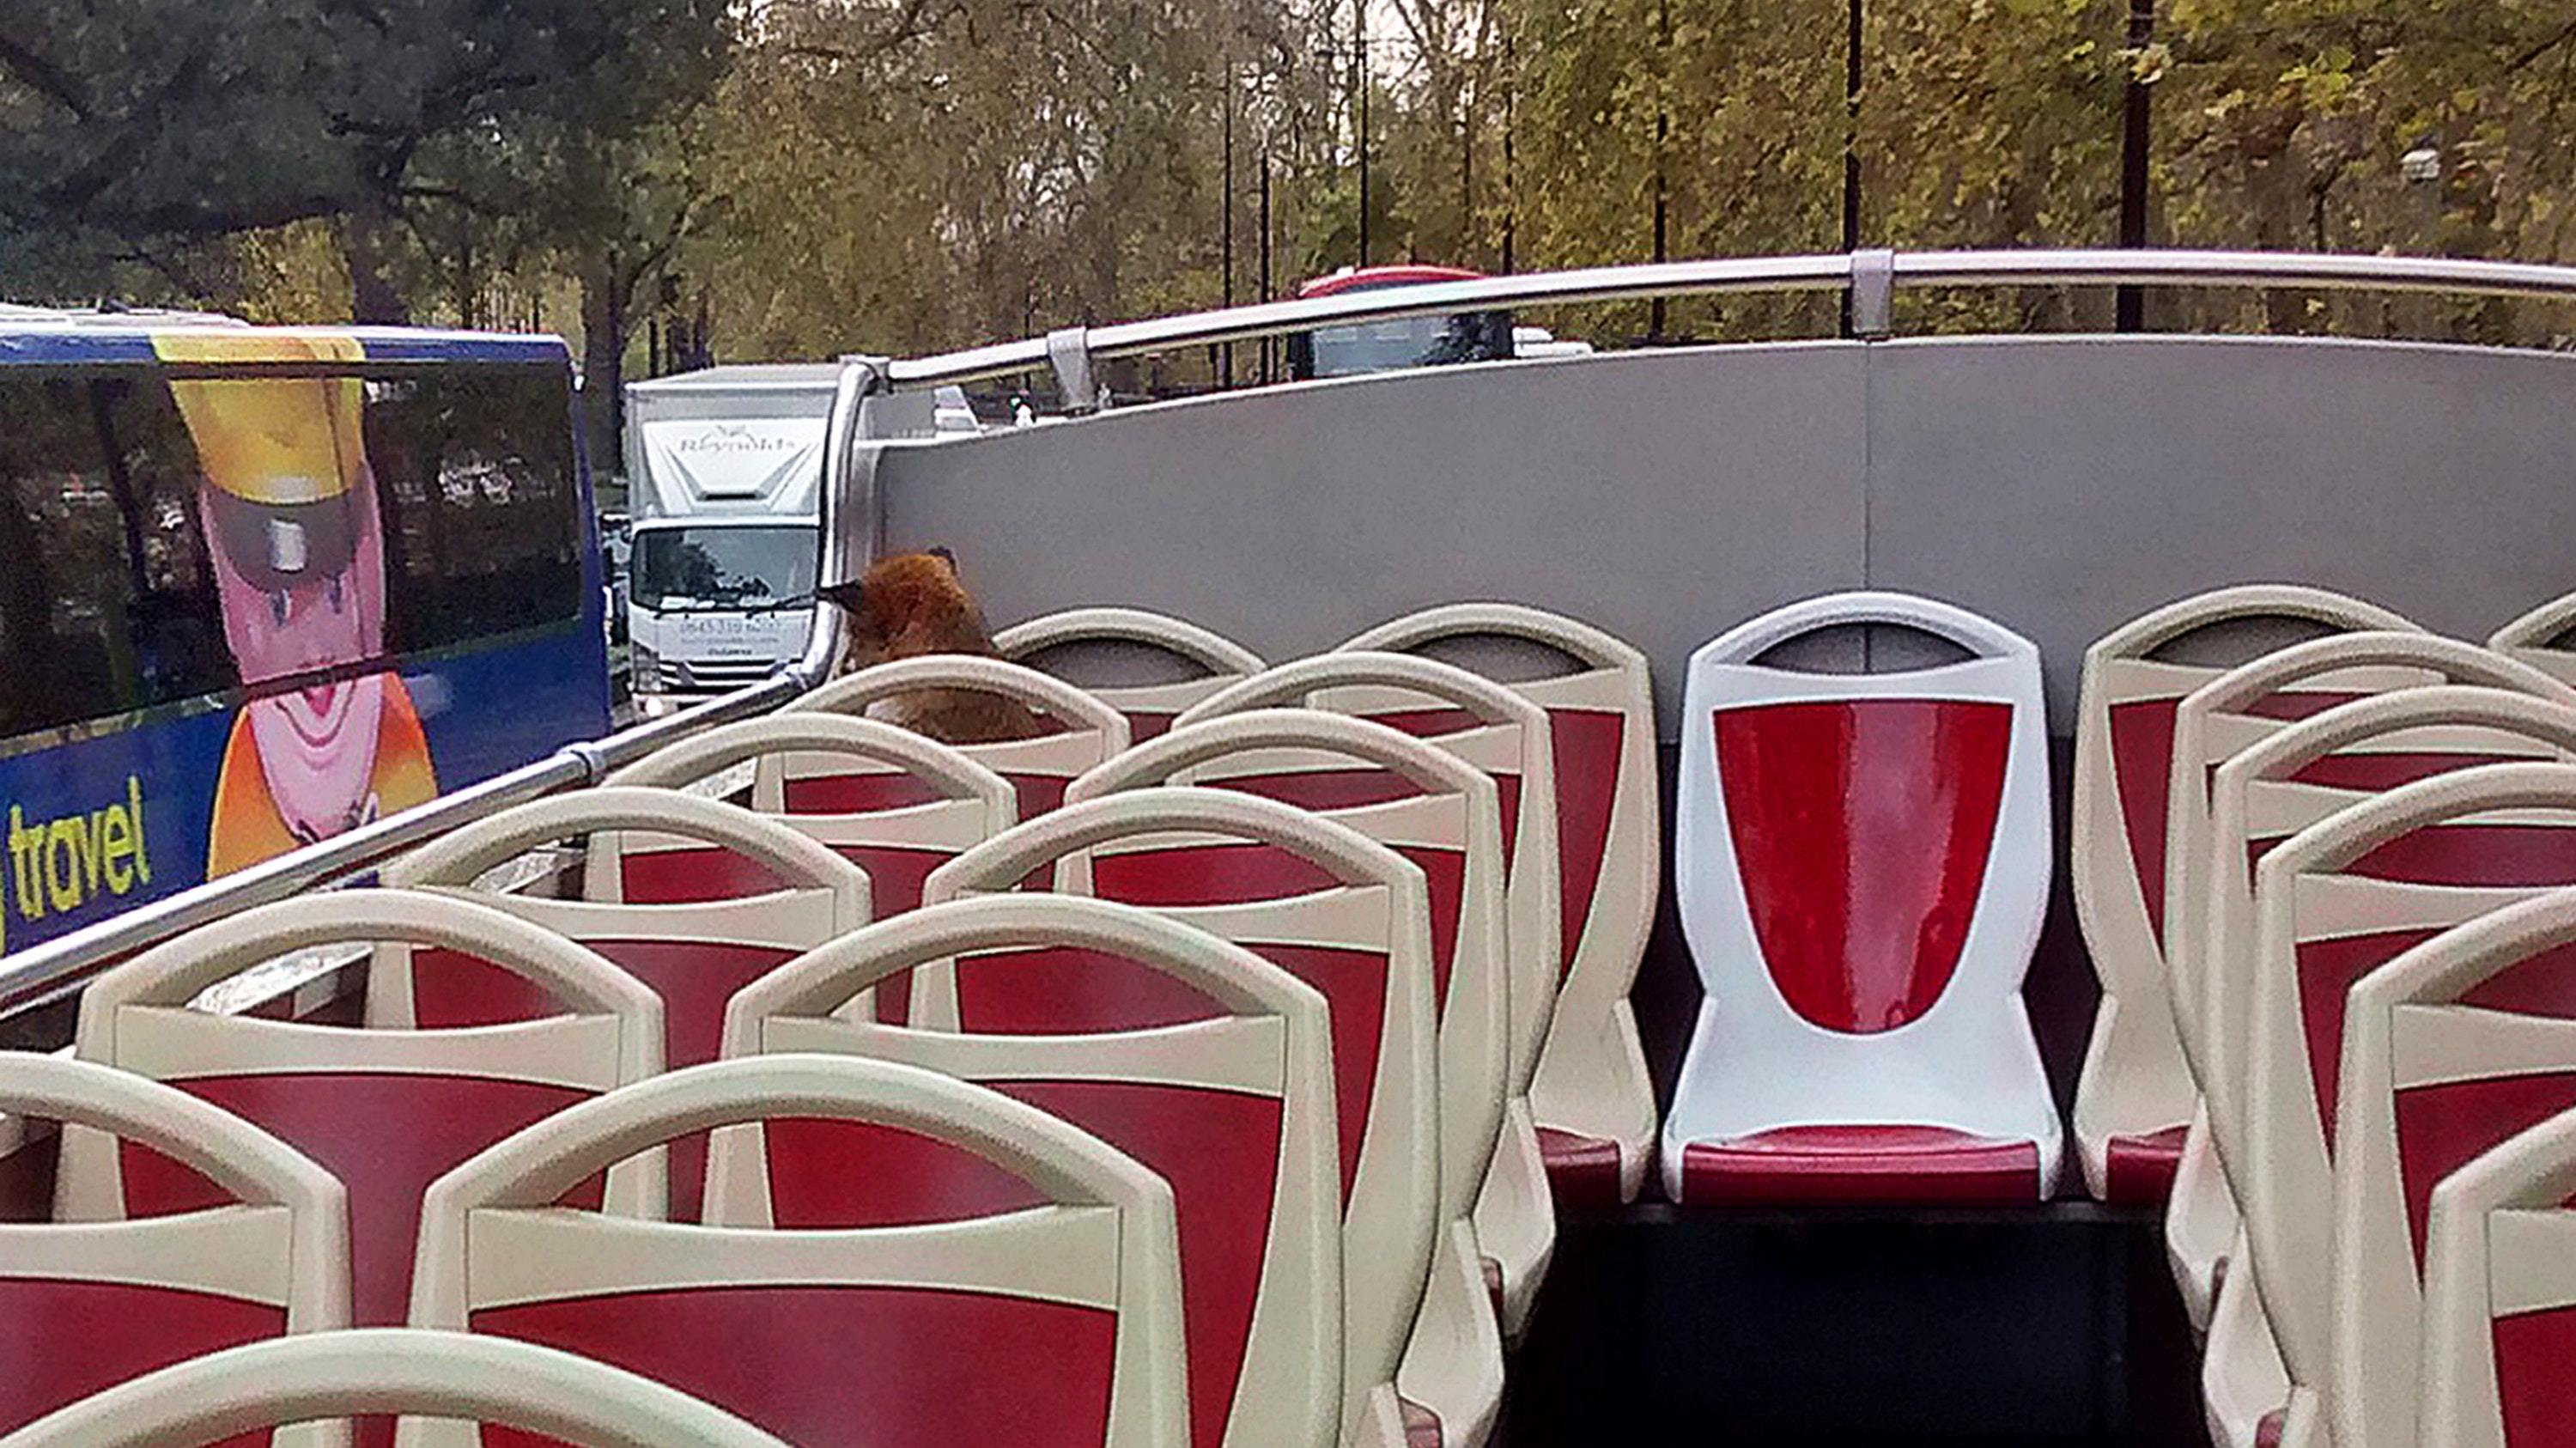 The RSPCA were called by Big Bus Tours to help catch the fox (RSPCA/PA)